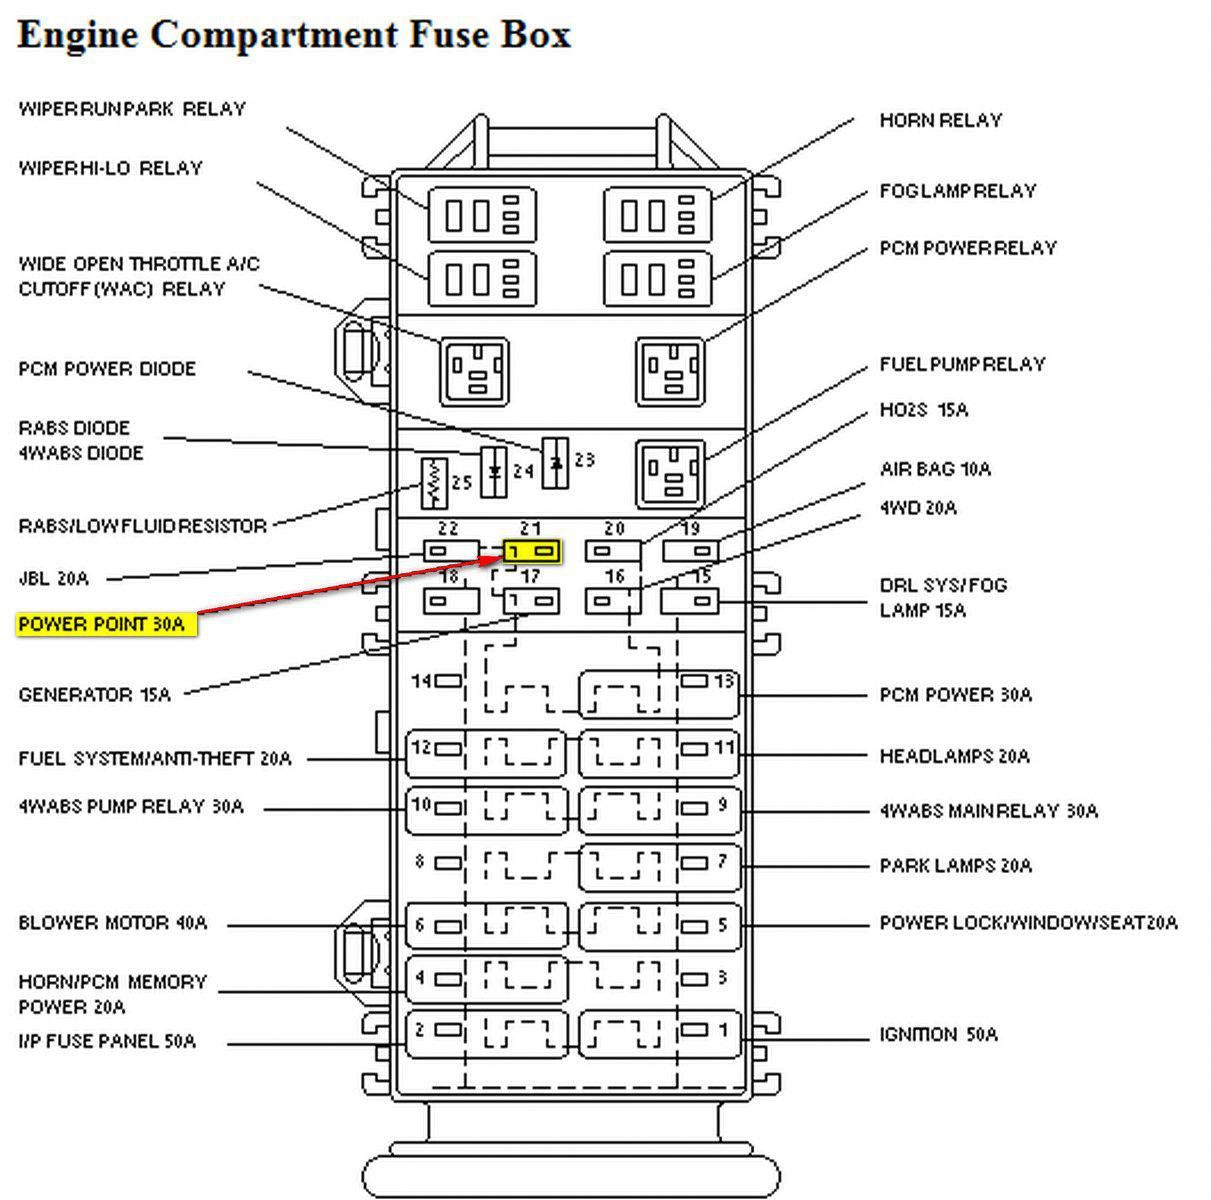 fuse box diagram 89 civic